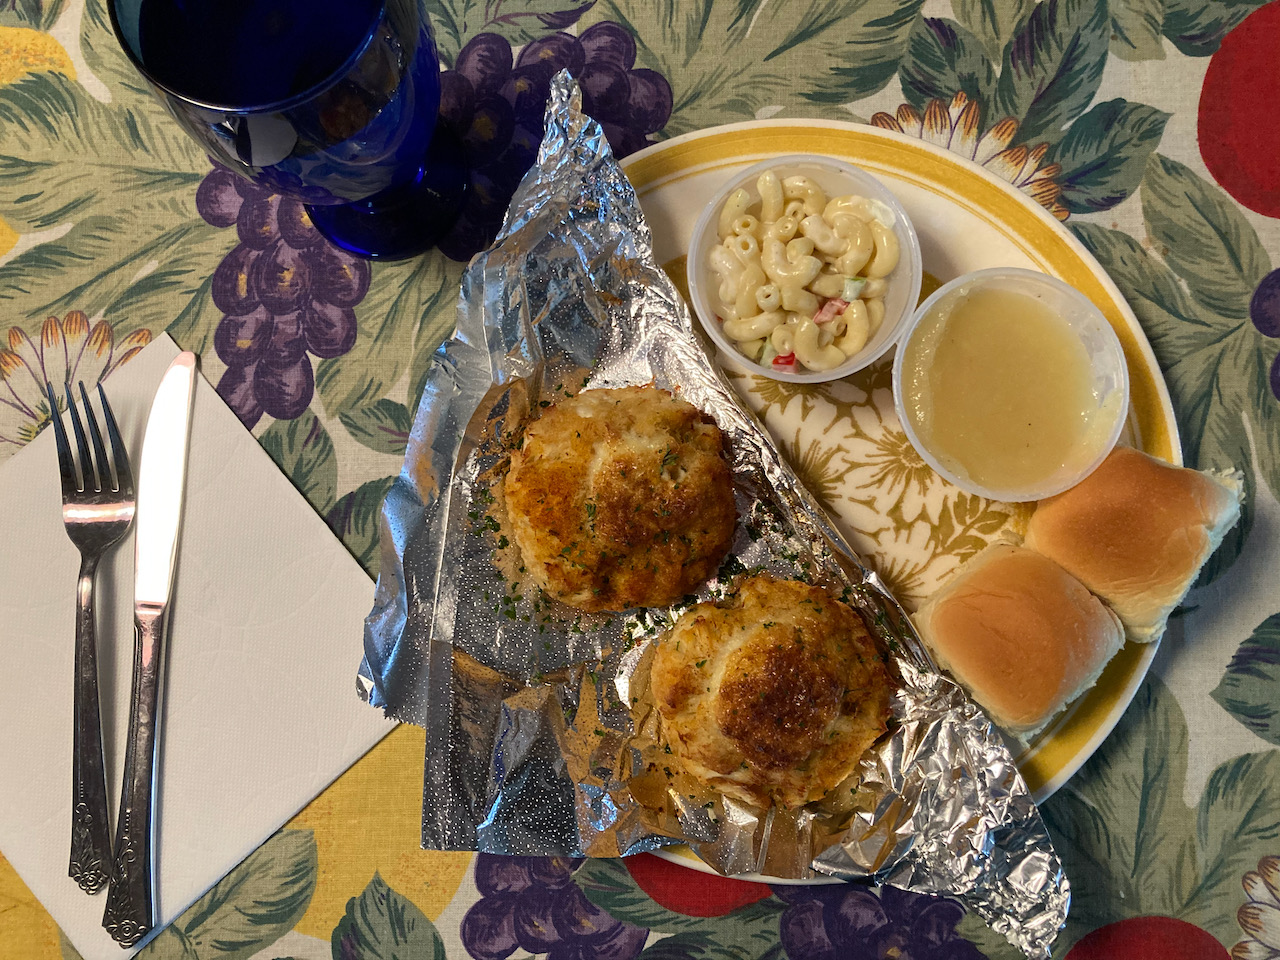 Plate with crab cakes, macaroni salad, and apple sauce.